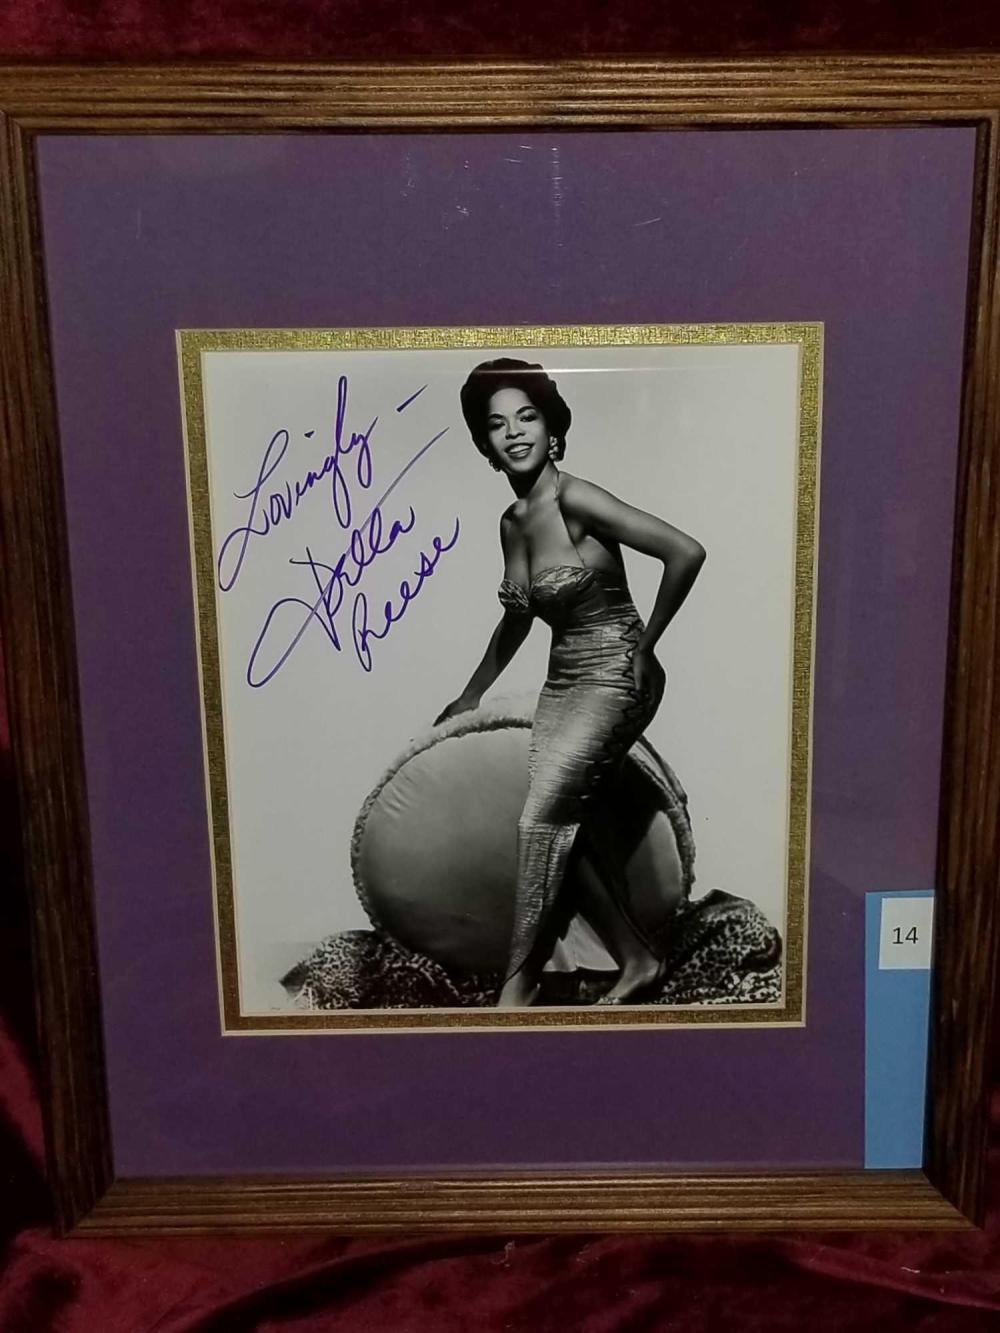 DELLA REESE SIGNED PHOTO IN FRAME